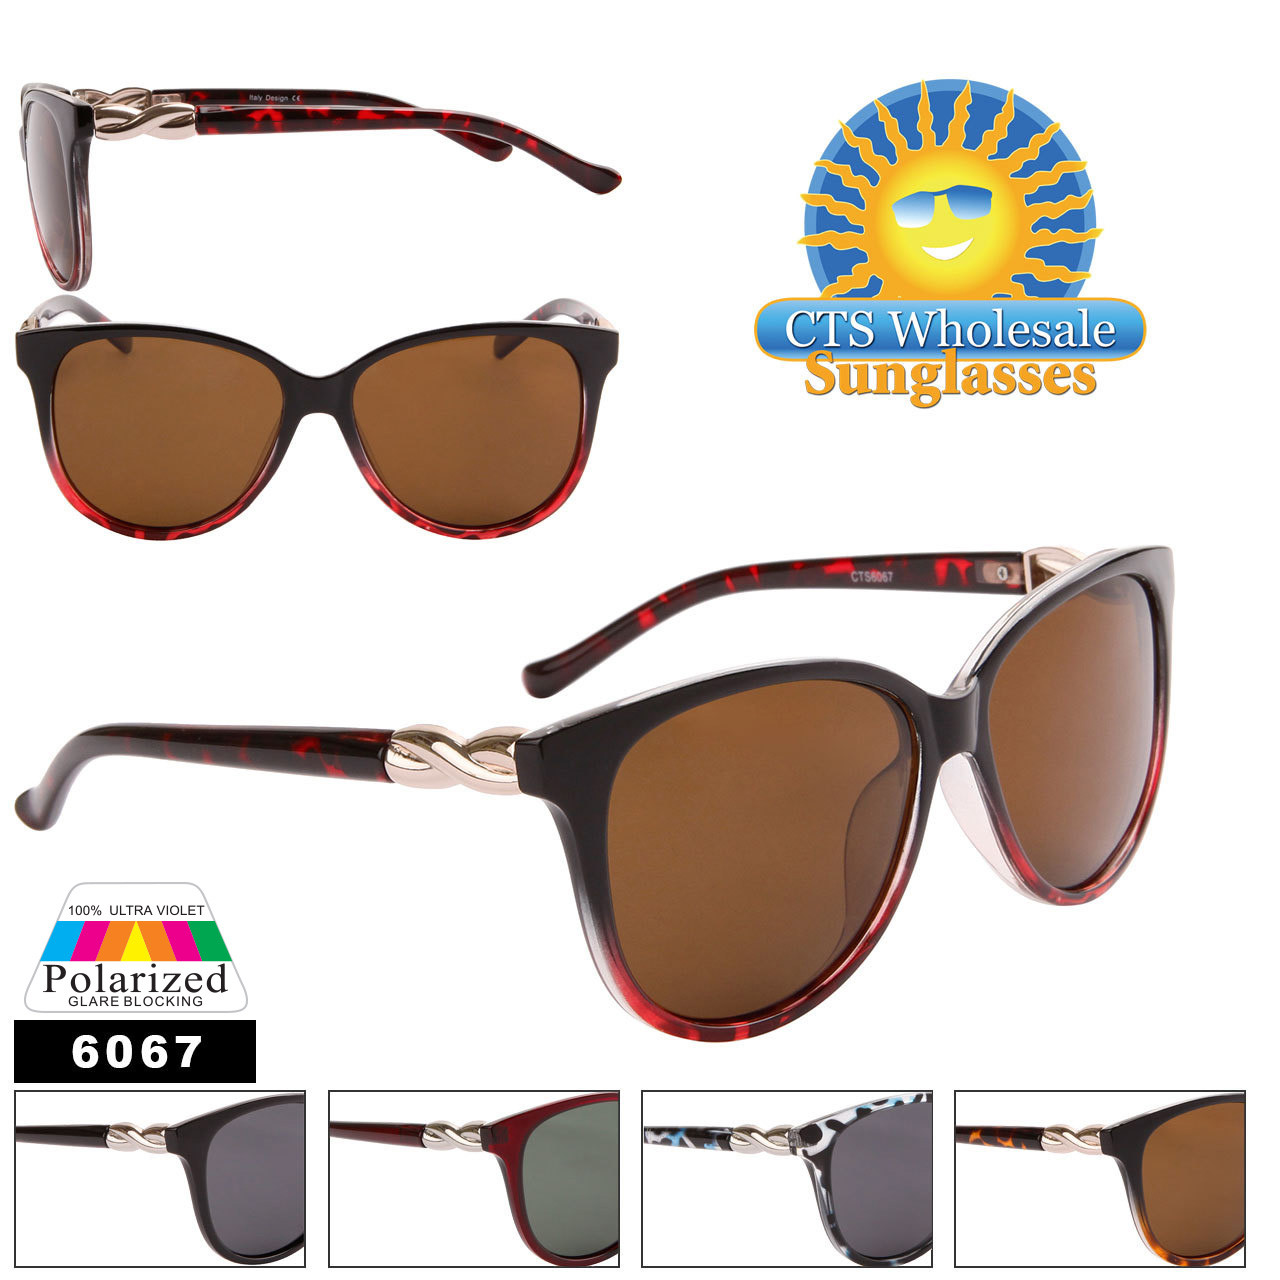 Women's Polarized Cat Eye Sunglasses Wholesale - 6067